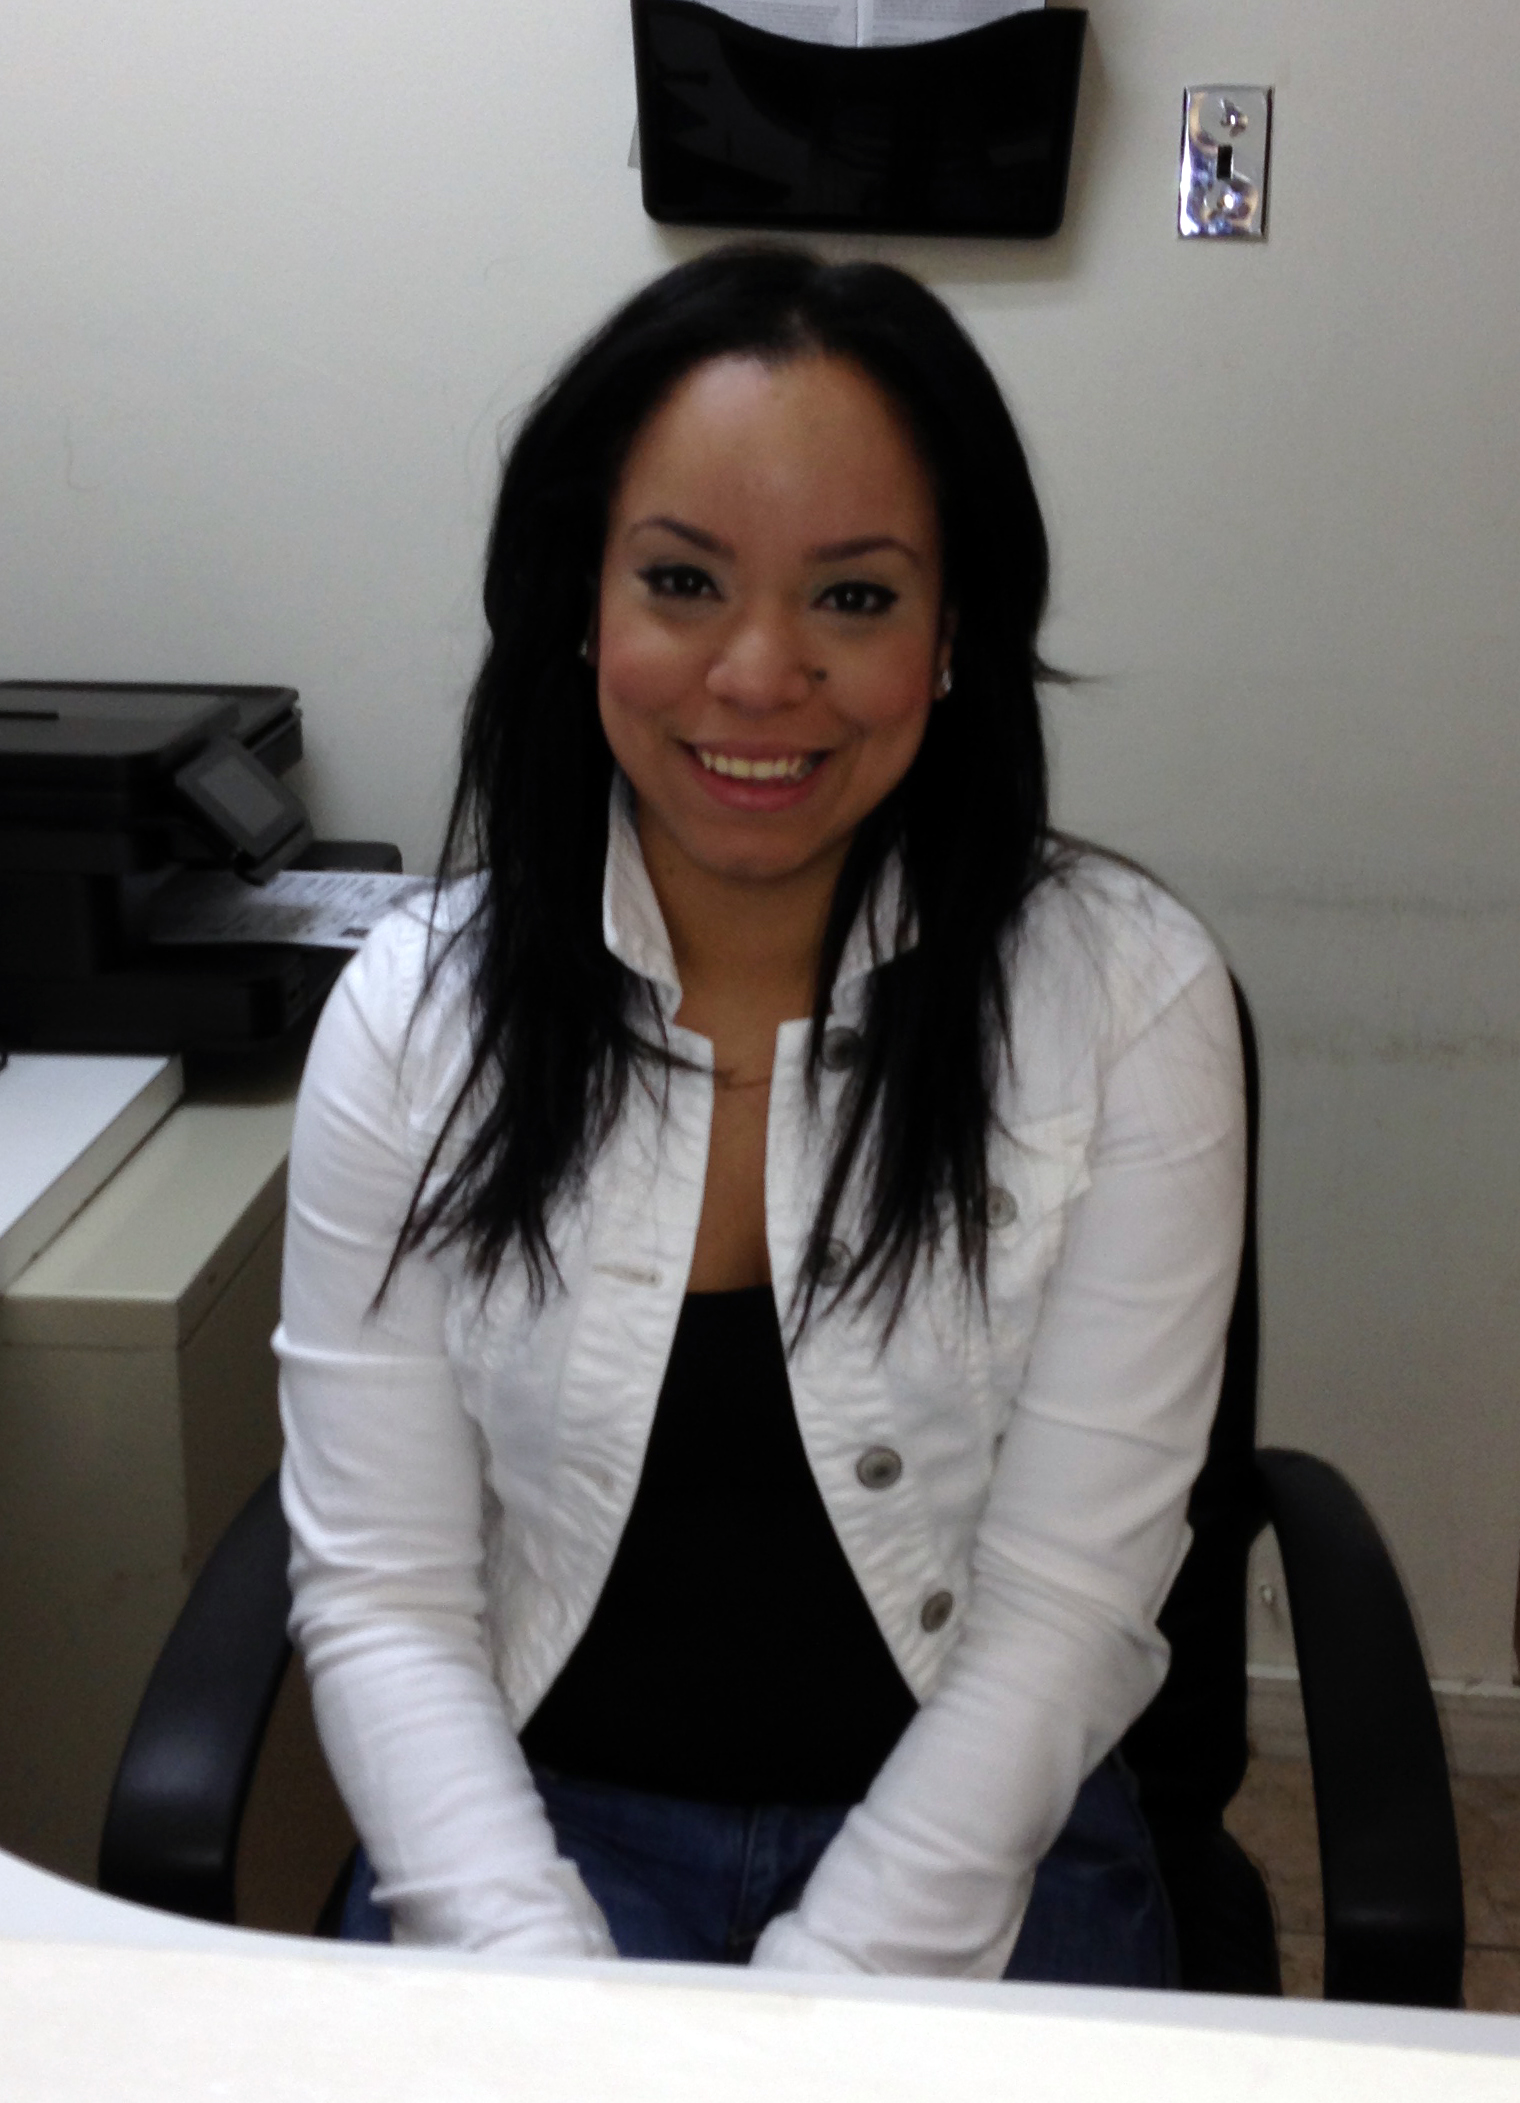 bronx orthodontics insurance coordinator, cathy